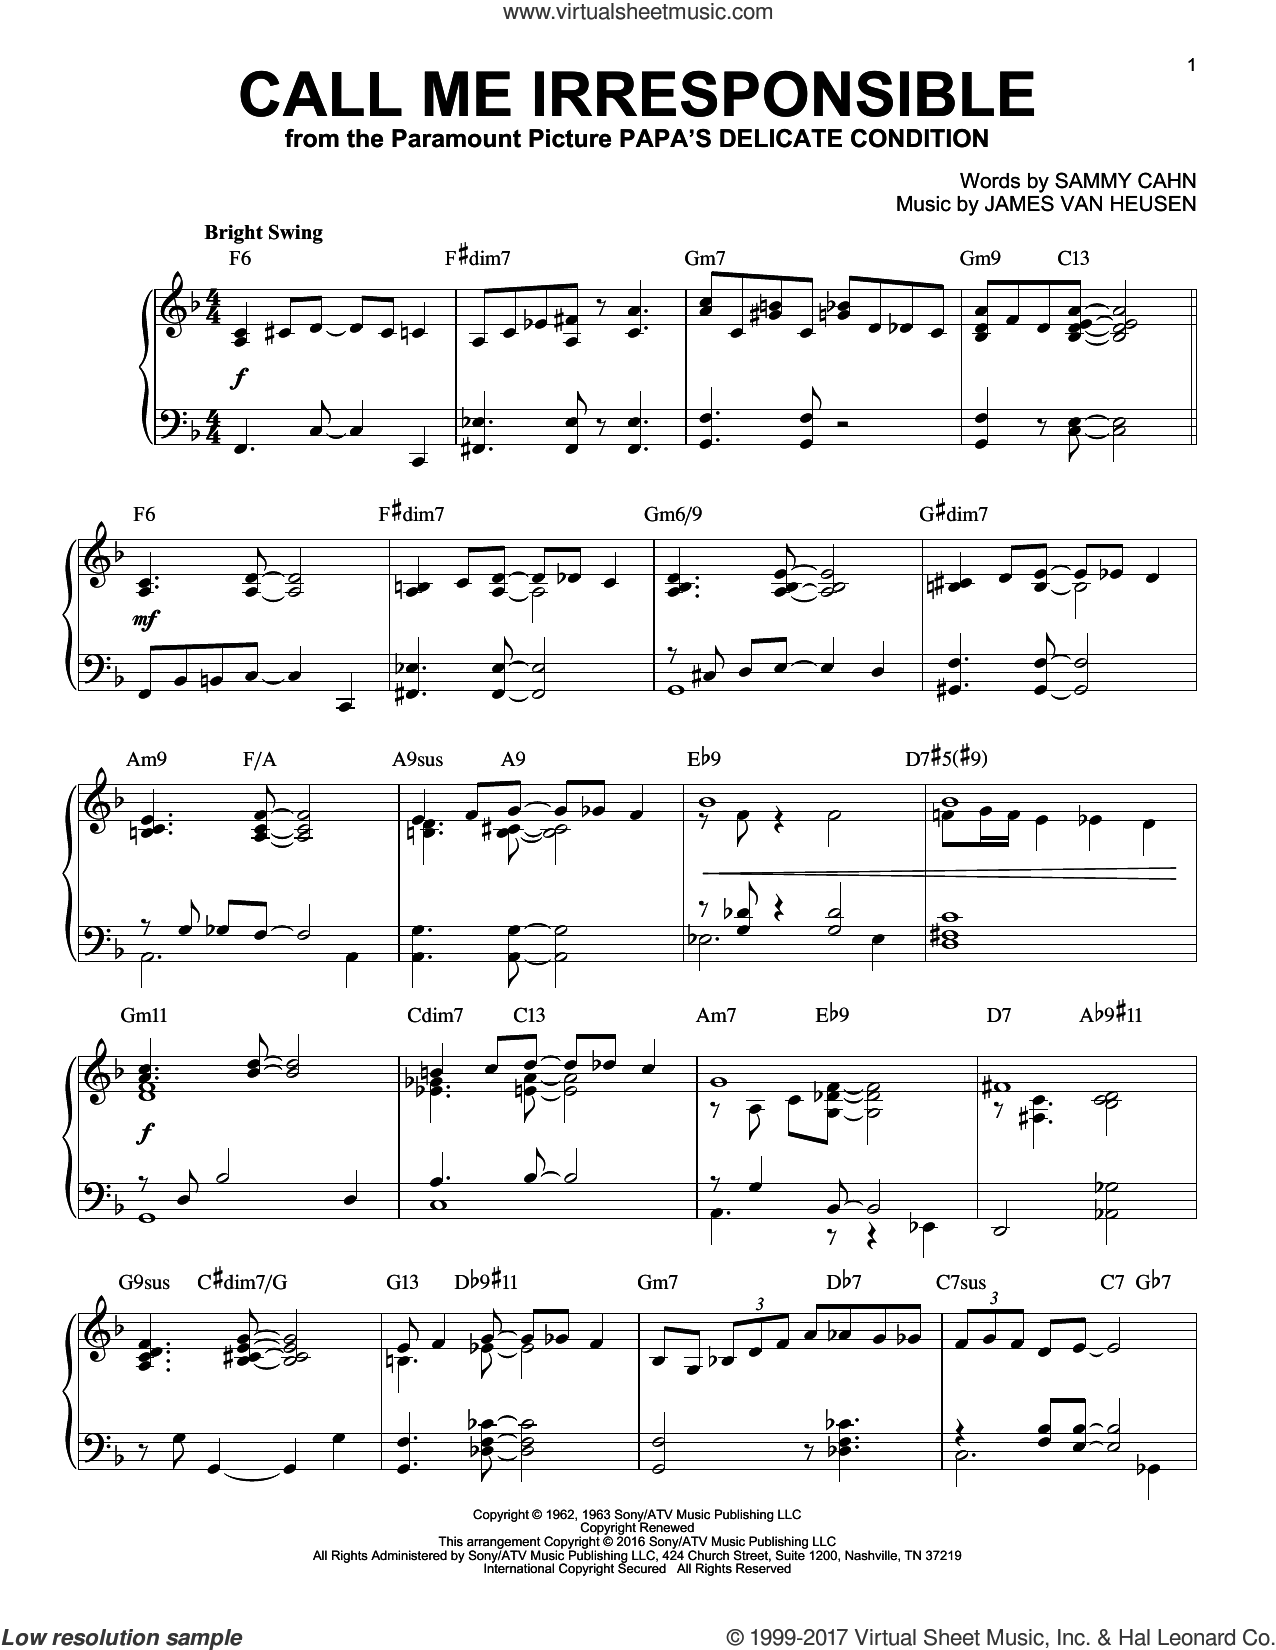 Call Me Irresponsible [Jazz version] (arr. Brent Edstrom) sheet music for piano solo by Sammy Cahn, Dinah Washington, Frank Sinatra, Jack Jones and Jimmy van Heusen, intermediate skill level